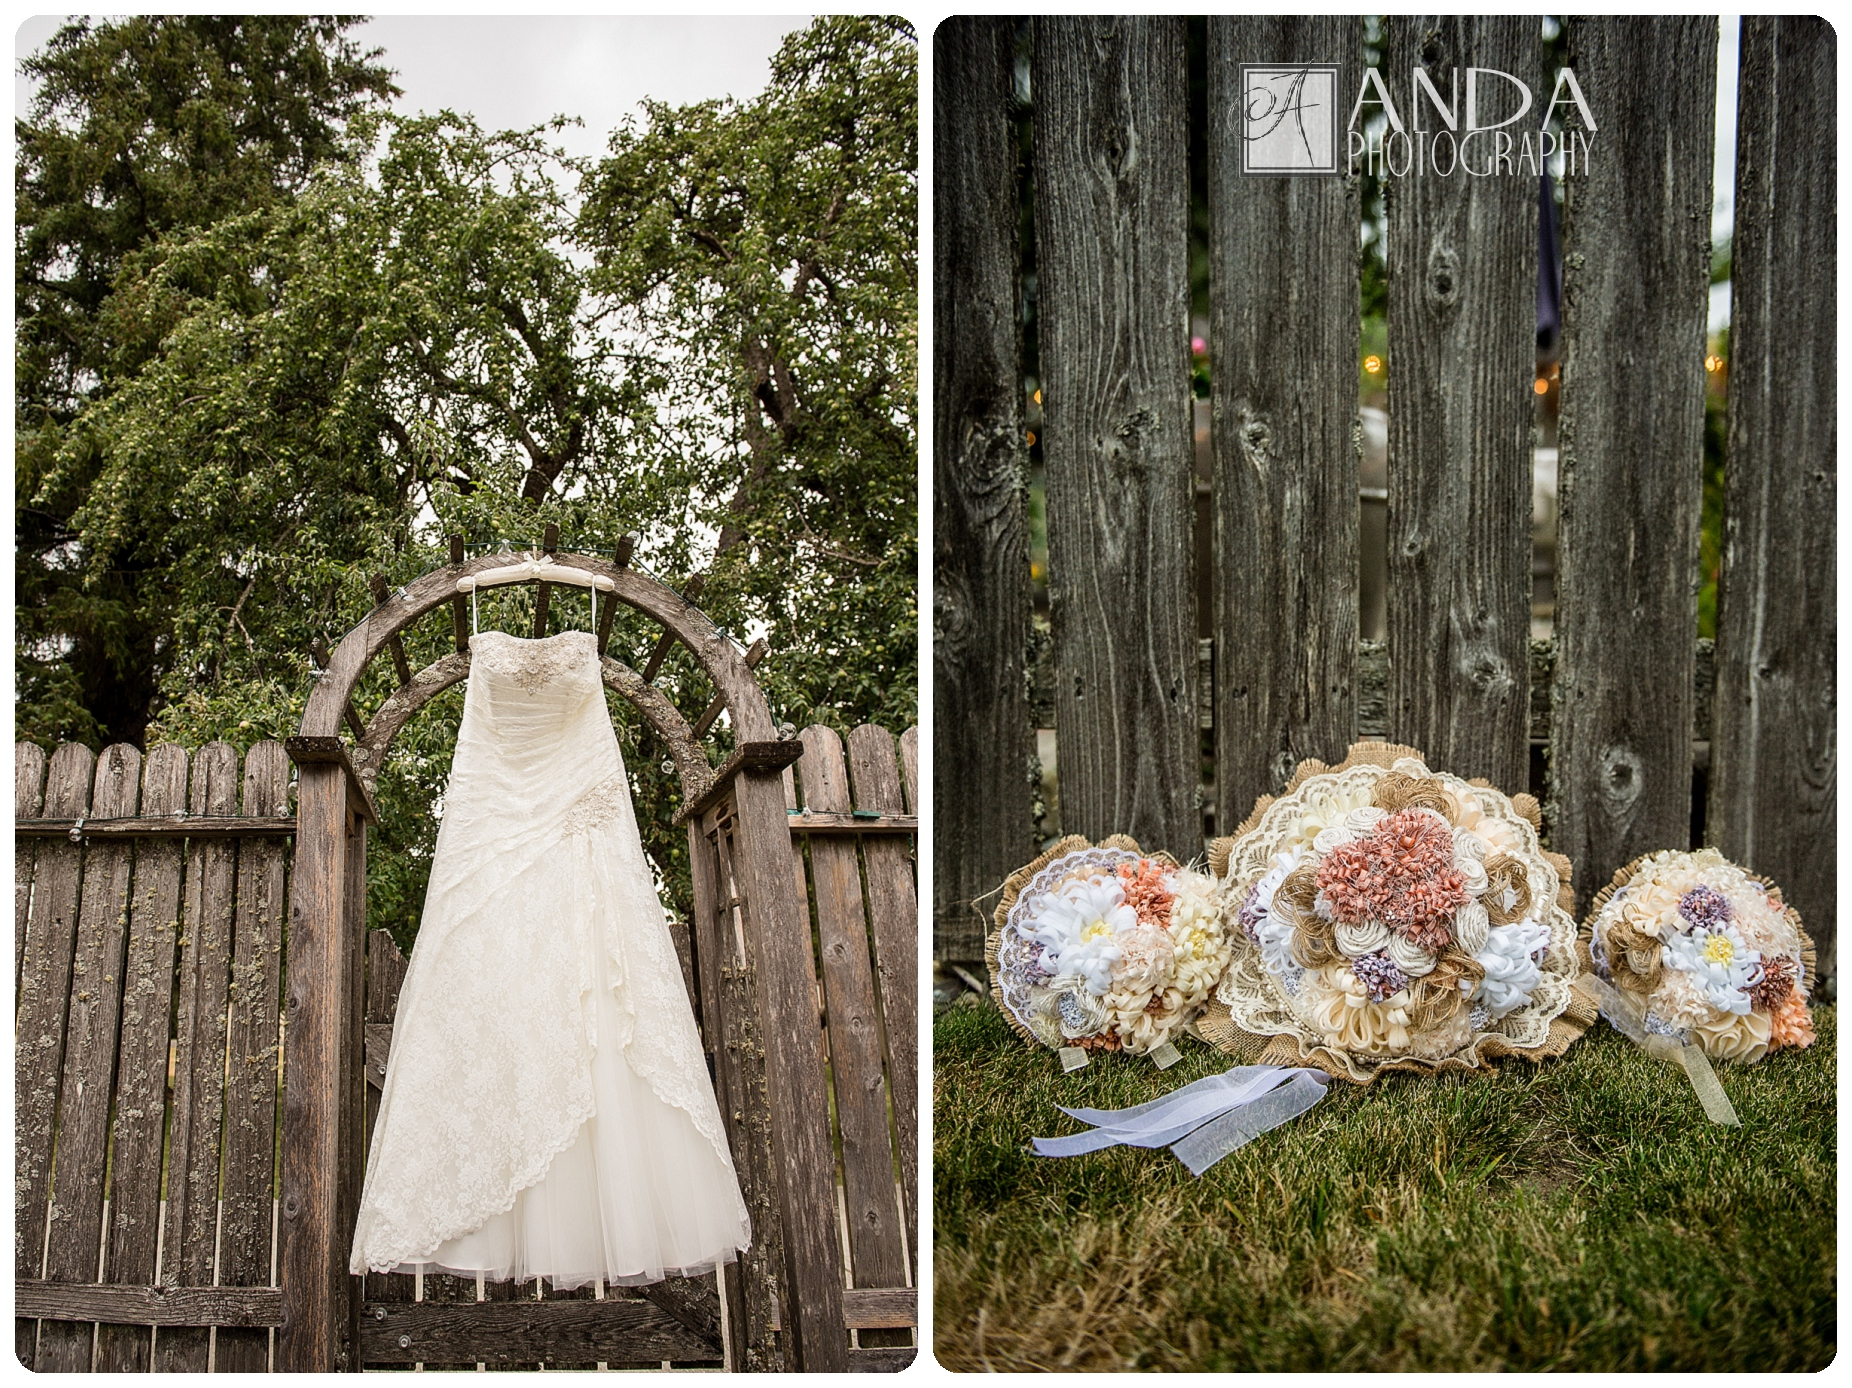 Merrill + Amy {The Creek at Clayton Meadows Wedding Photography}